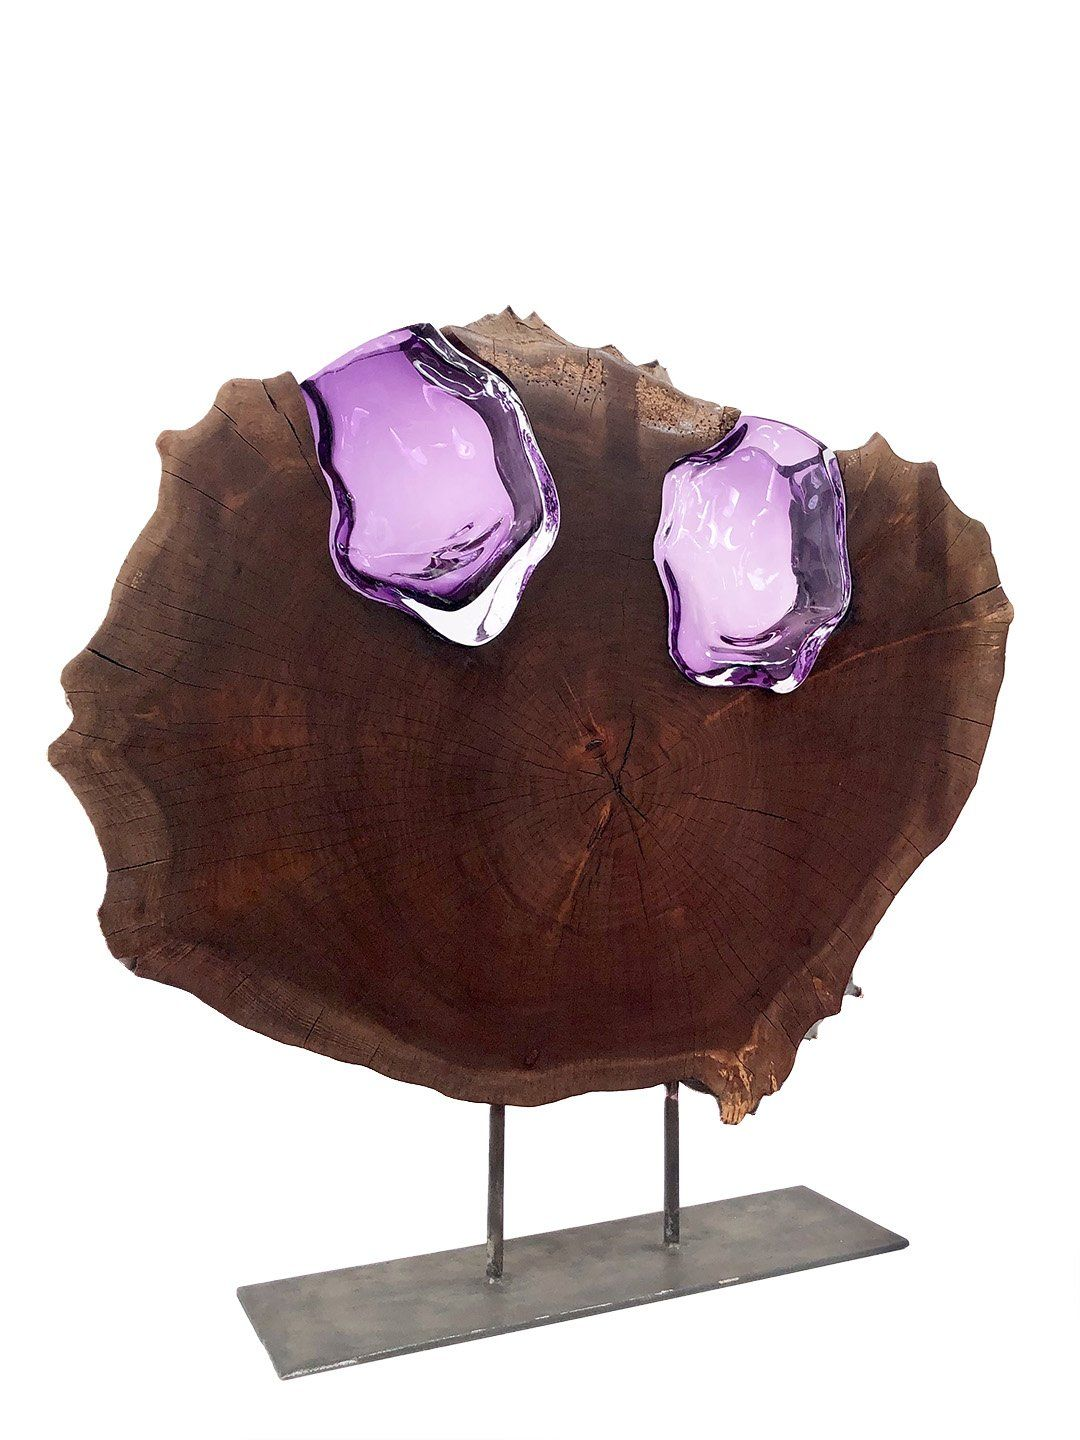 Claro Walnut Round with Two Amethyst Glass Flowers Wood, Glass, Metal Base Scott Slagerman Glass